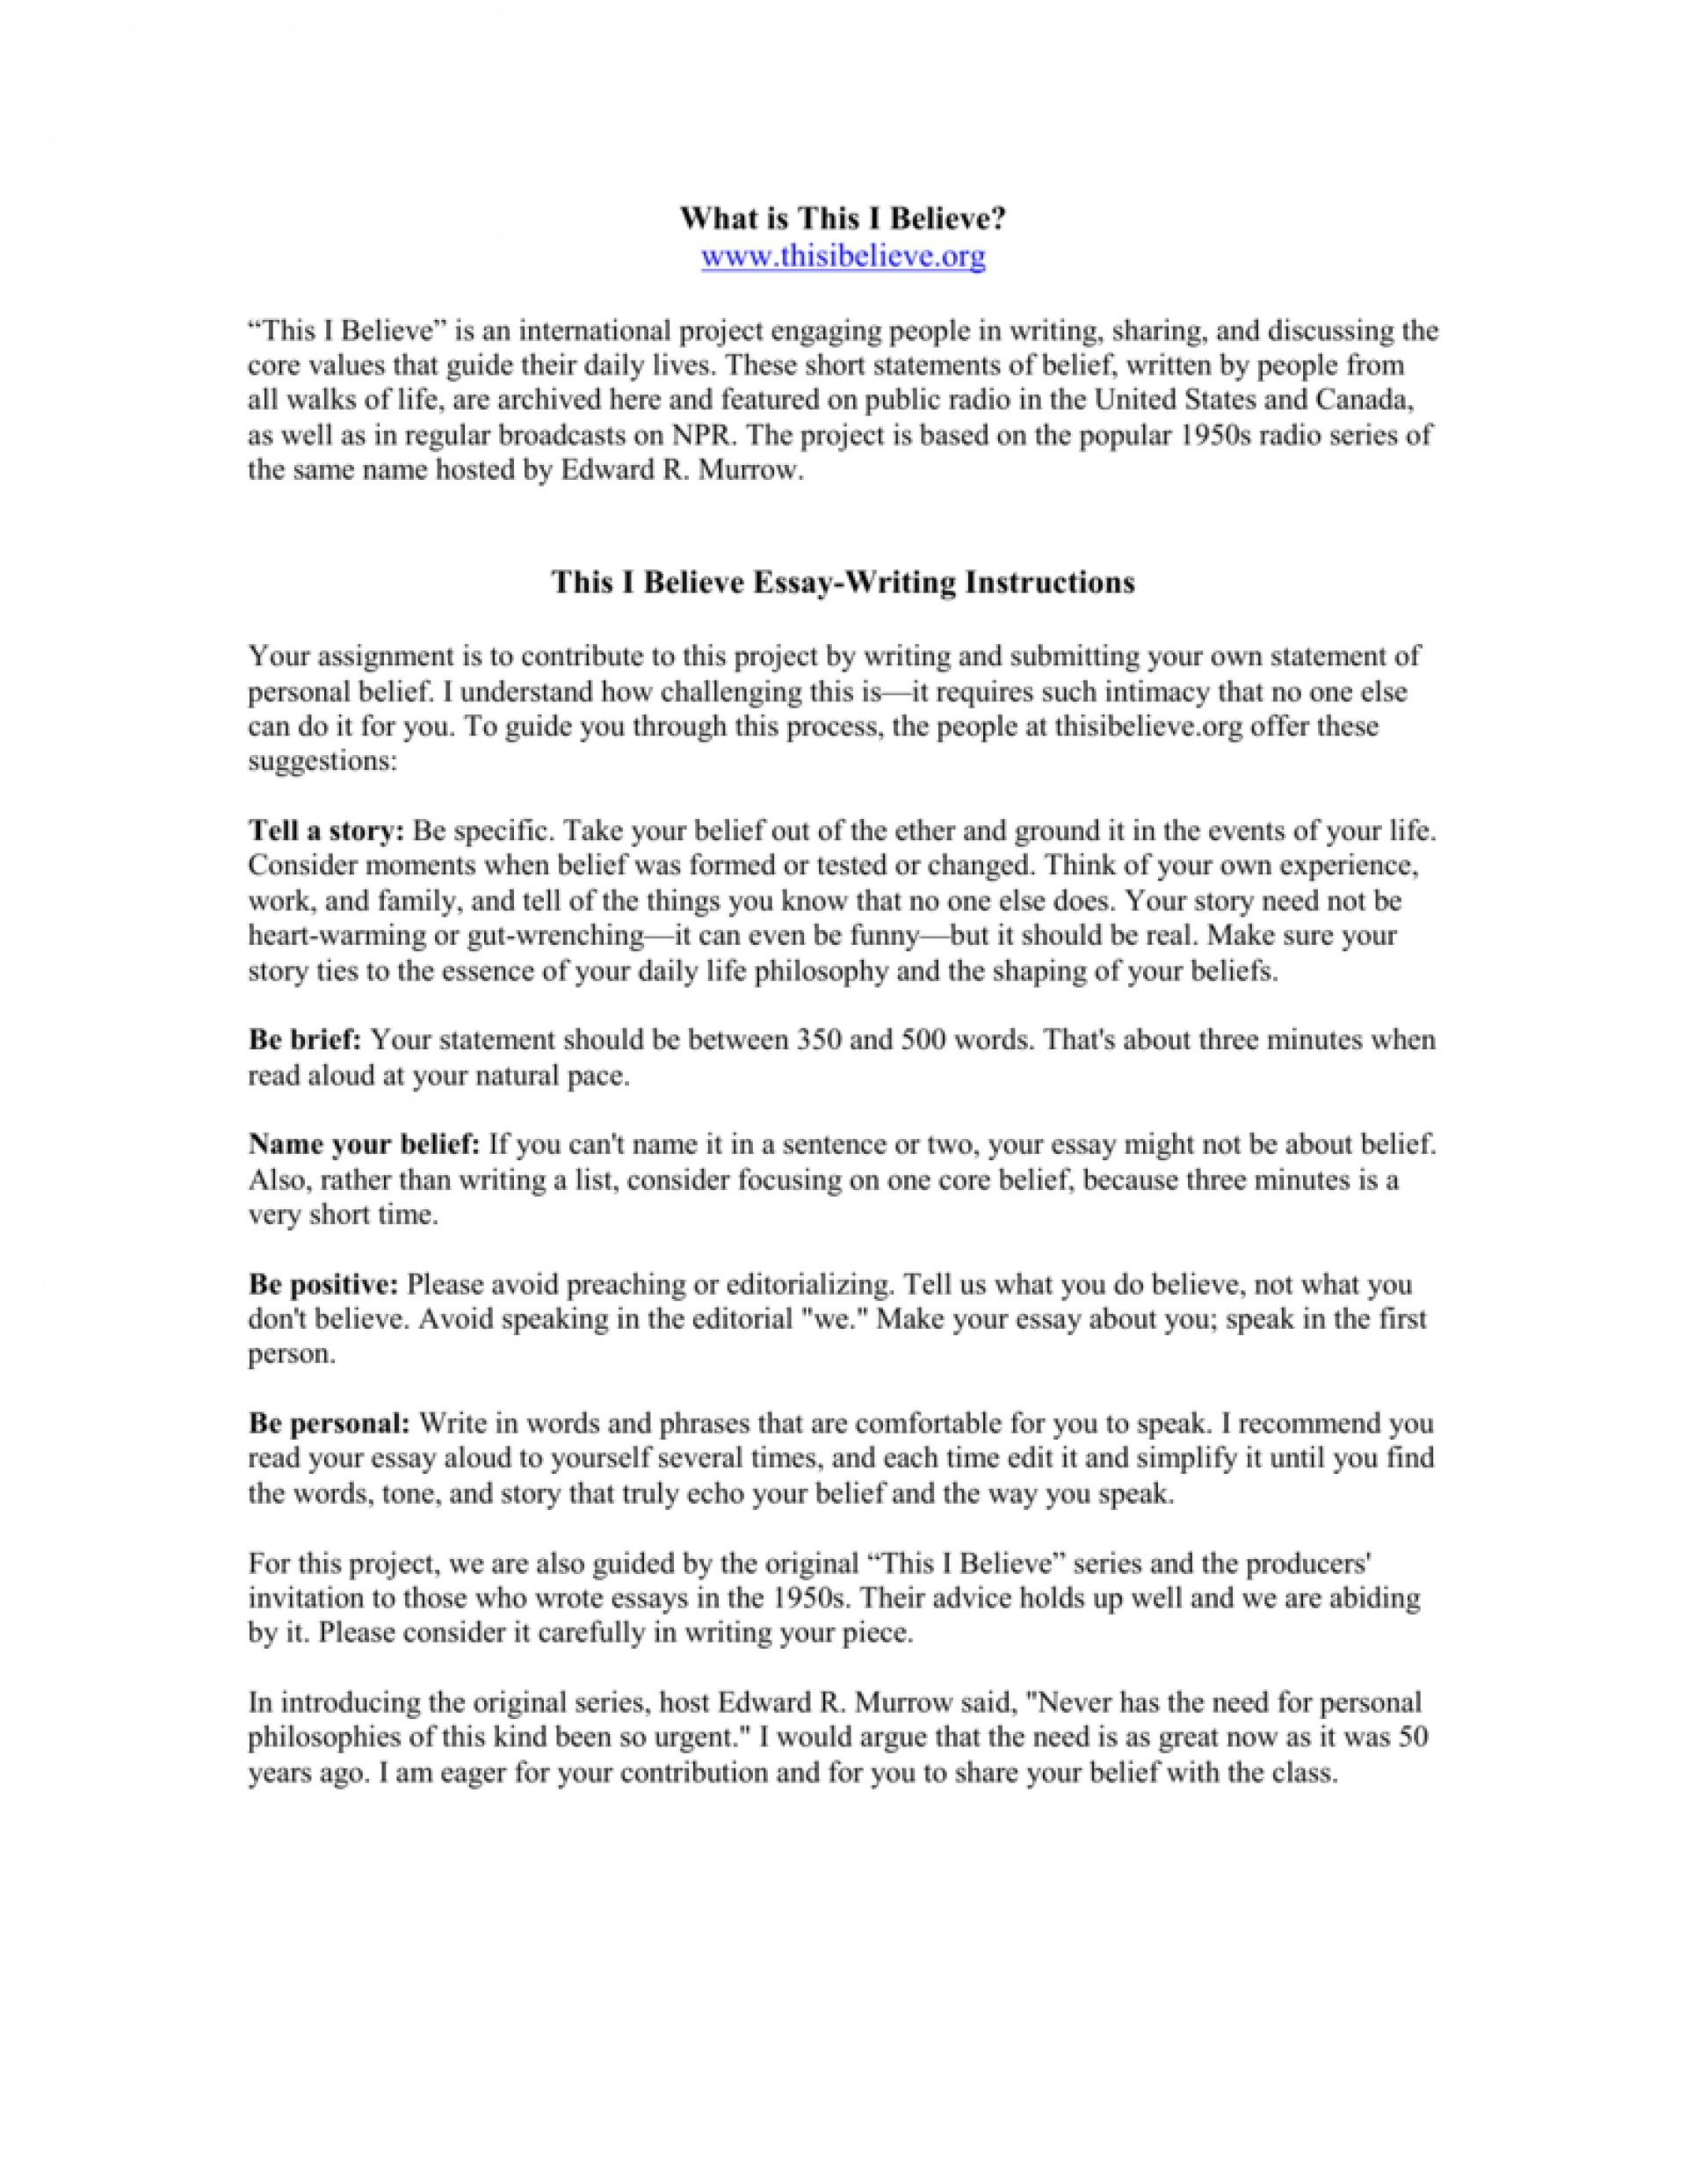 009 Essay Example How To Write This I Believe 008807226 1 Fantastic A Things On What 1920